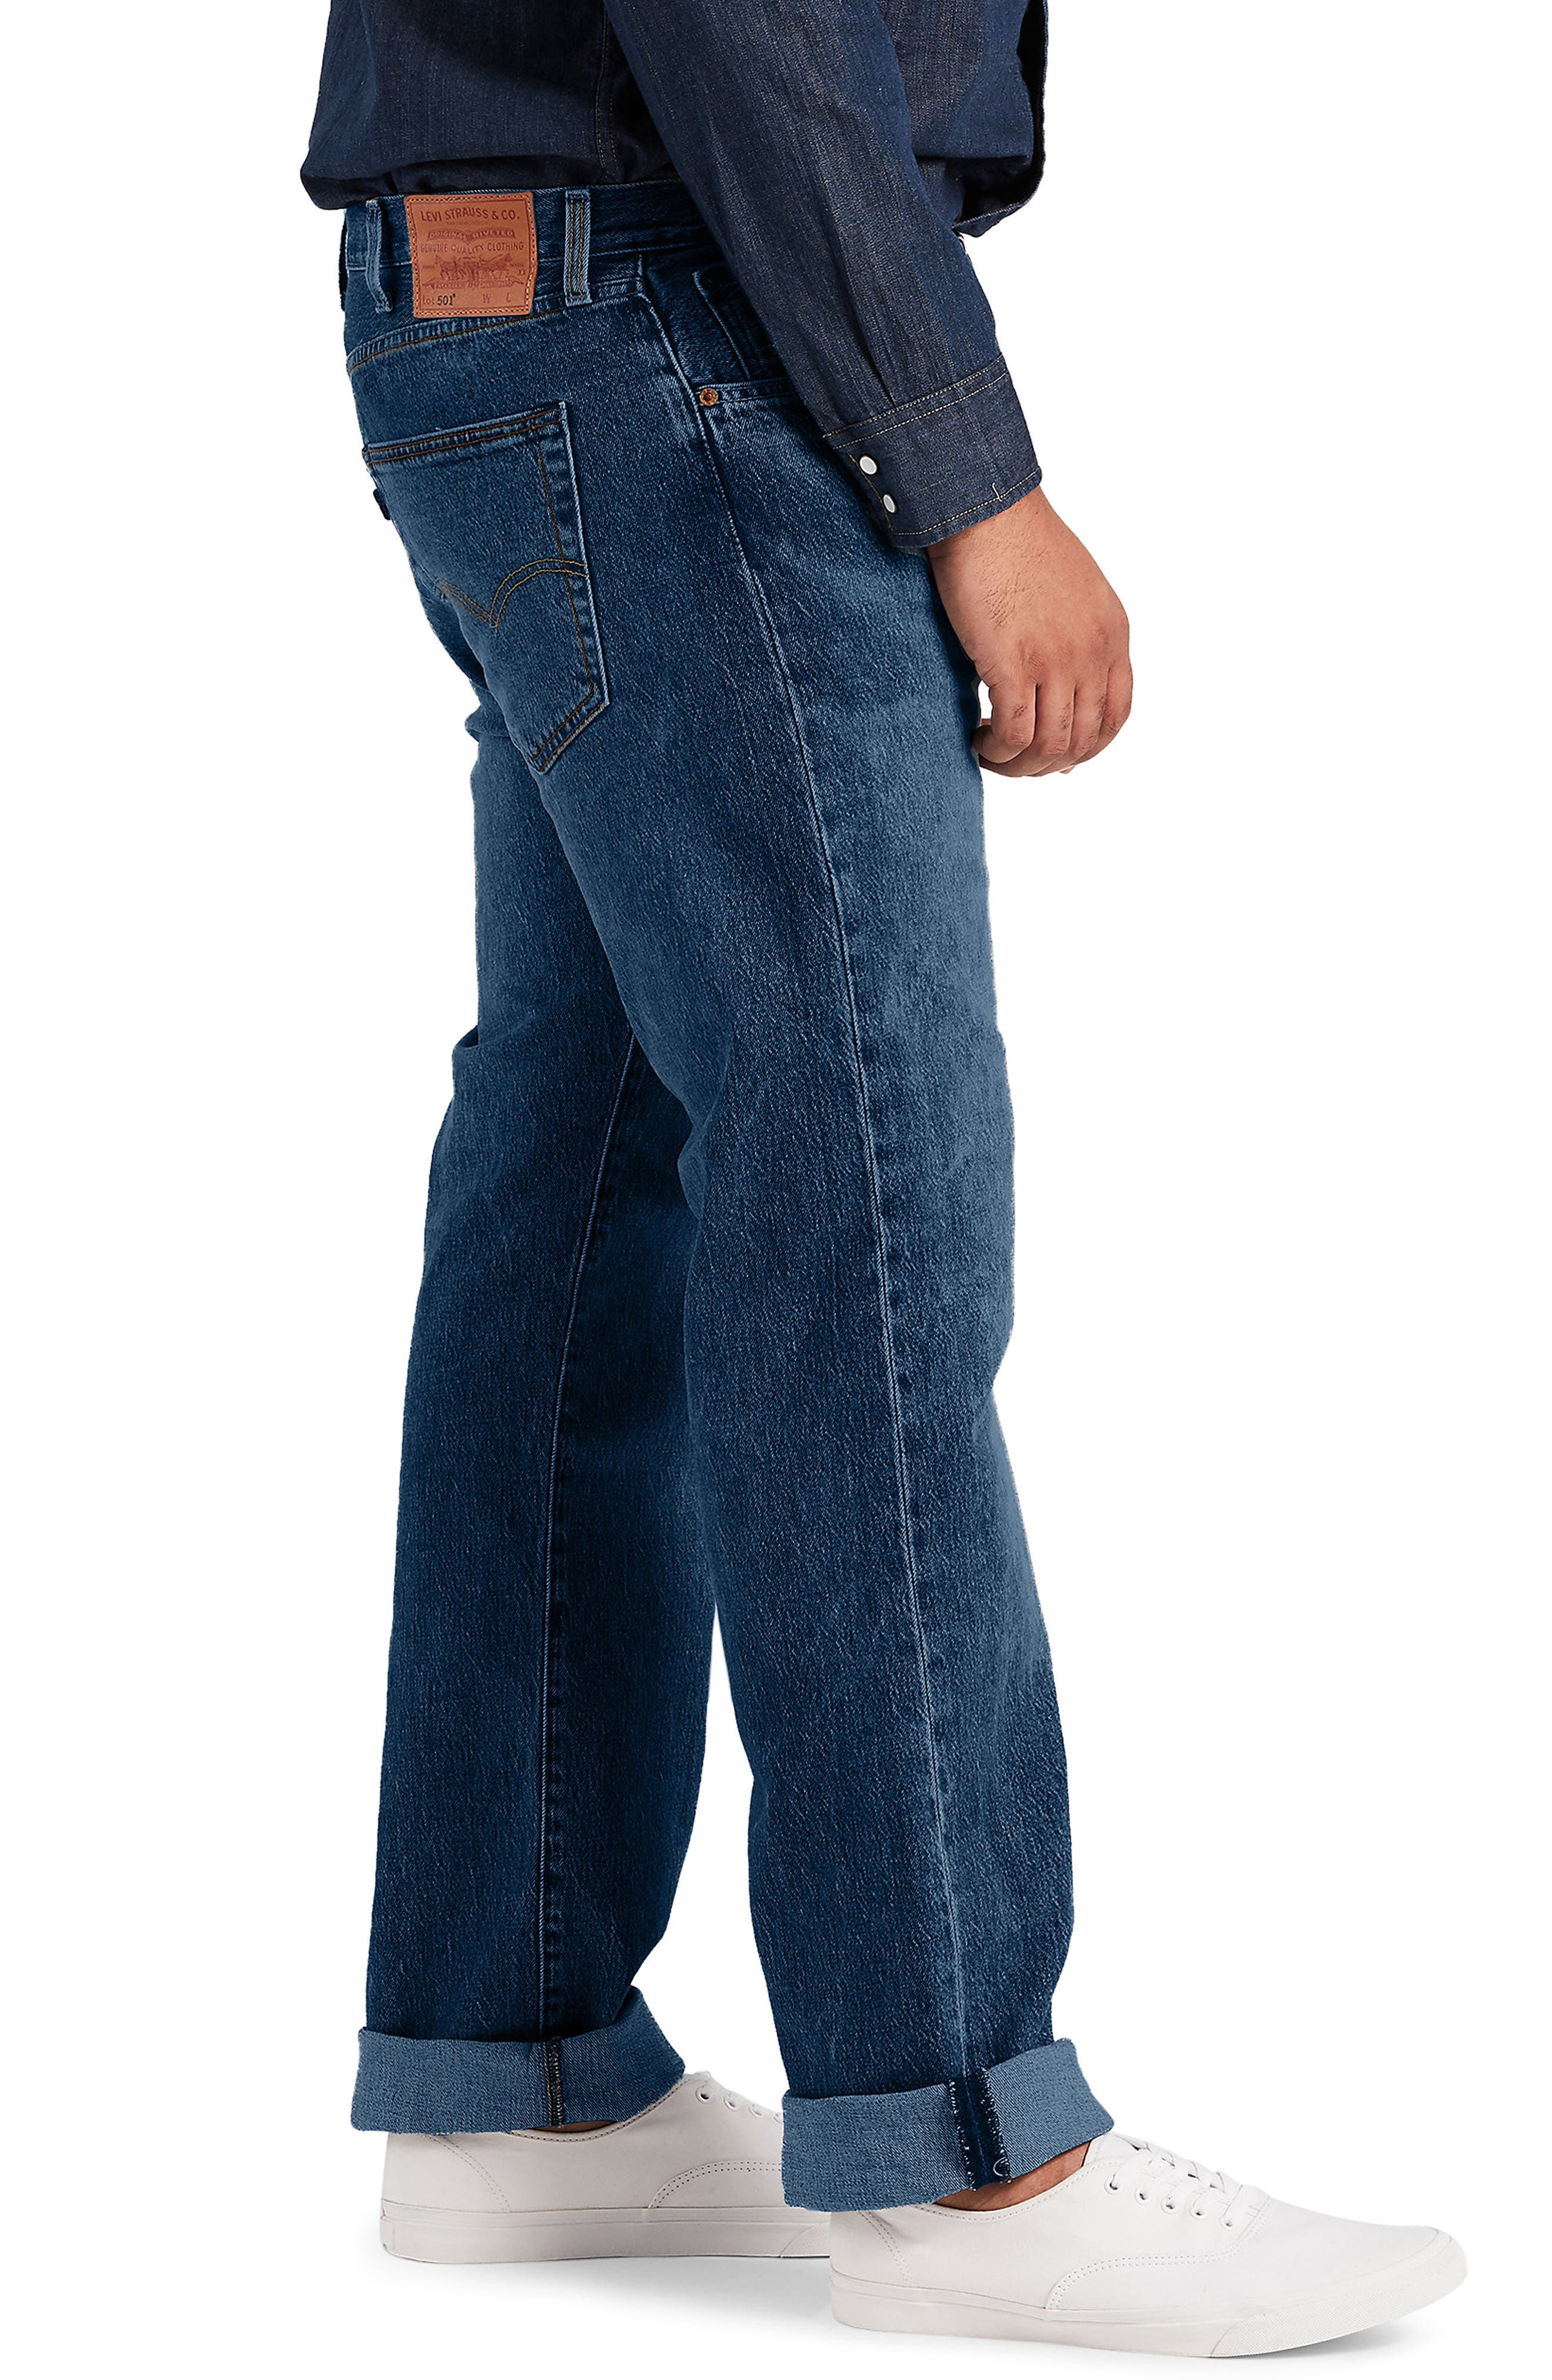 LEVI'S<SUP>®</SUP>,                             501<sup>®</sup> Straight Leg Jeans,                             Alternate thumbnail 3, color,                             DAIRY WHIPPED